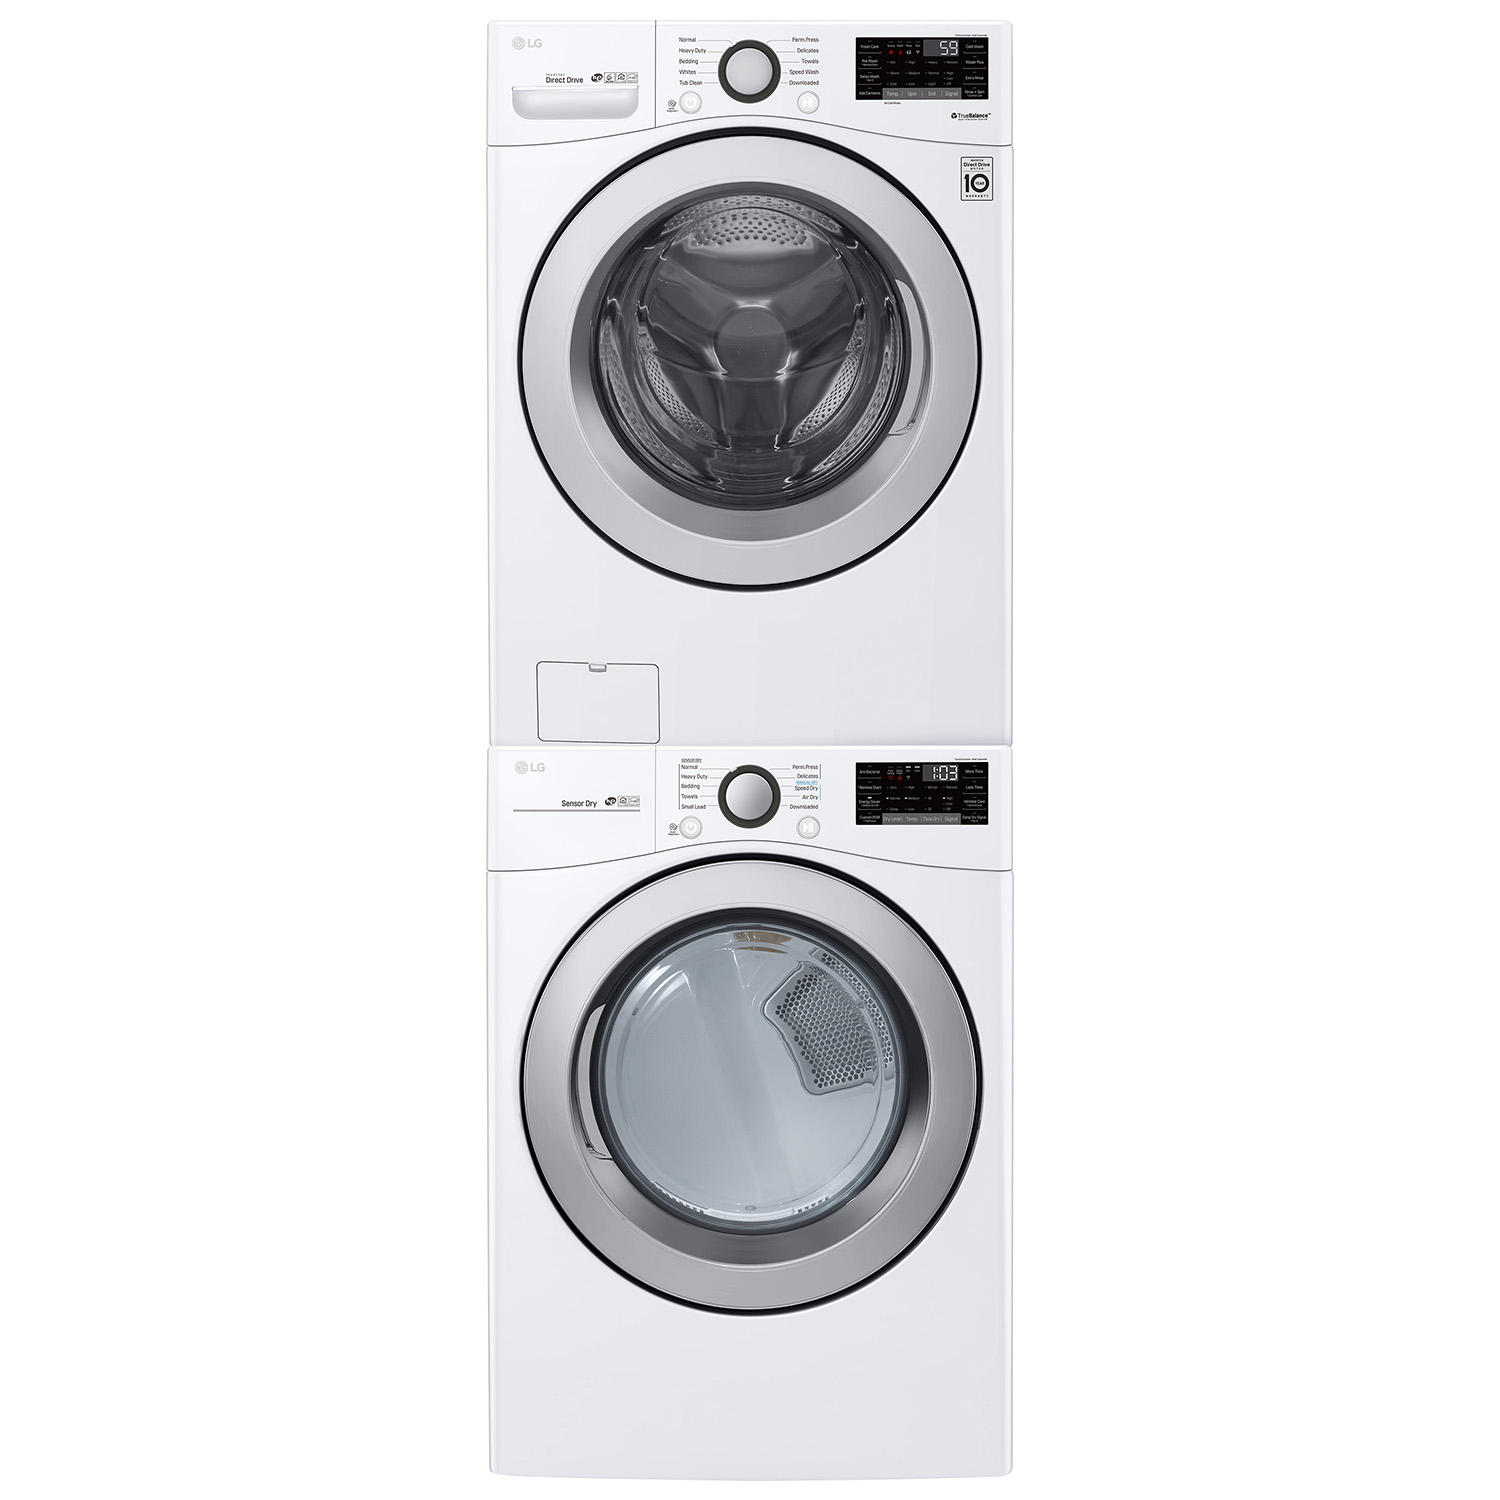 LG Large Capacity Front Load Washer and Dryer Suite